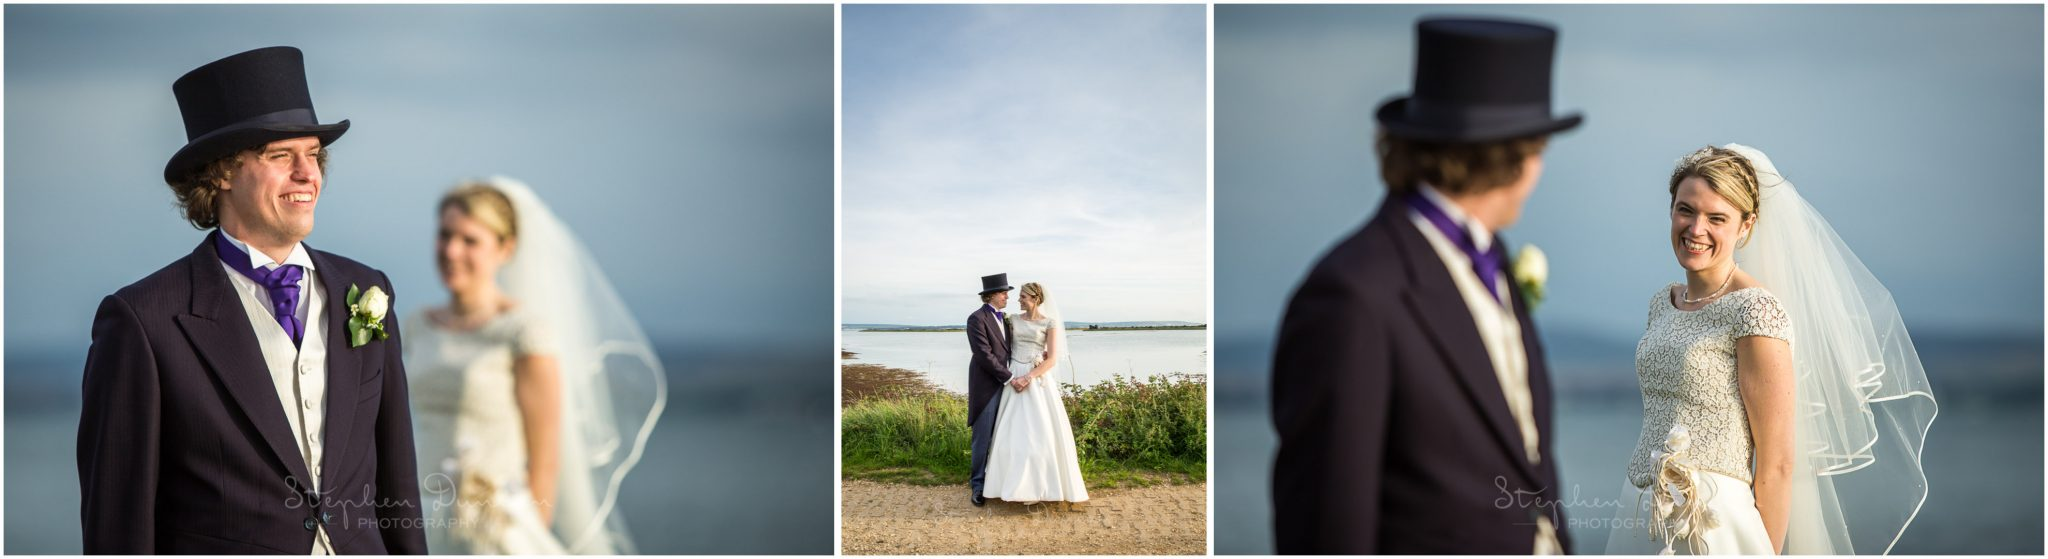 Lymington wedding photography bride and groom portraits